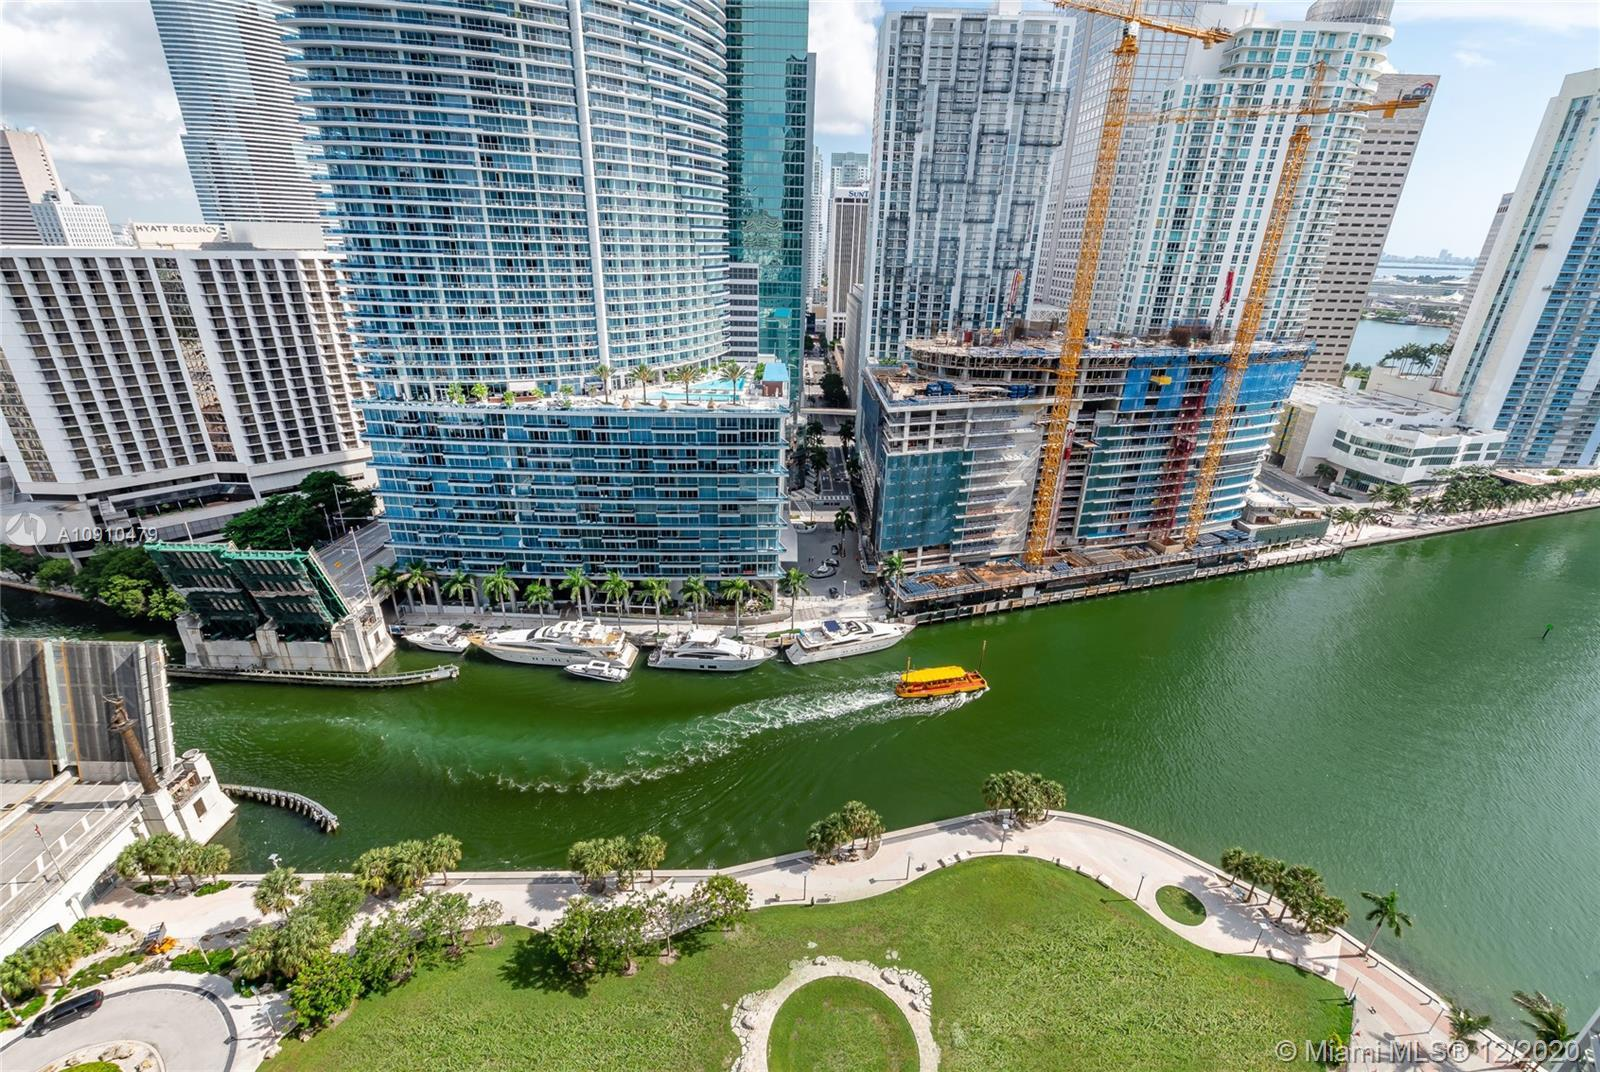 SPECTACULAR BRIGHT AND SPACIOUS FULLY FURNISHED 2 BEDROOM / 2 BATHROOM CORNER UNIT AT ICON BRICKELL.